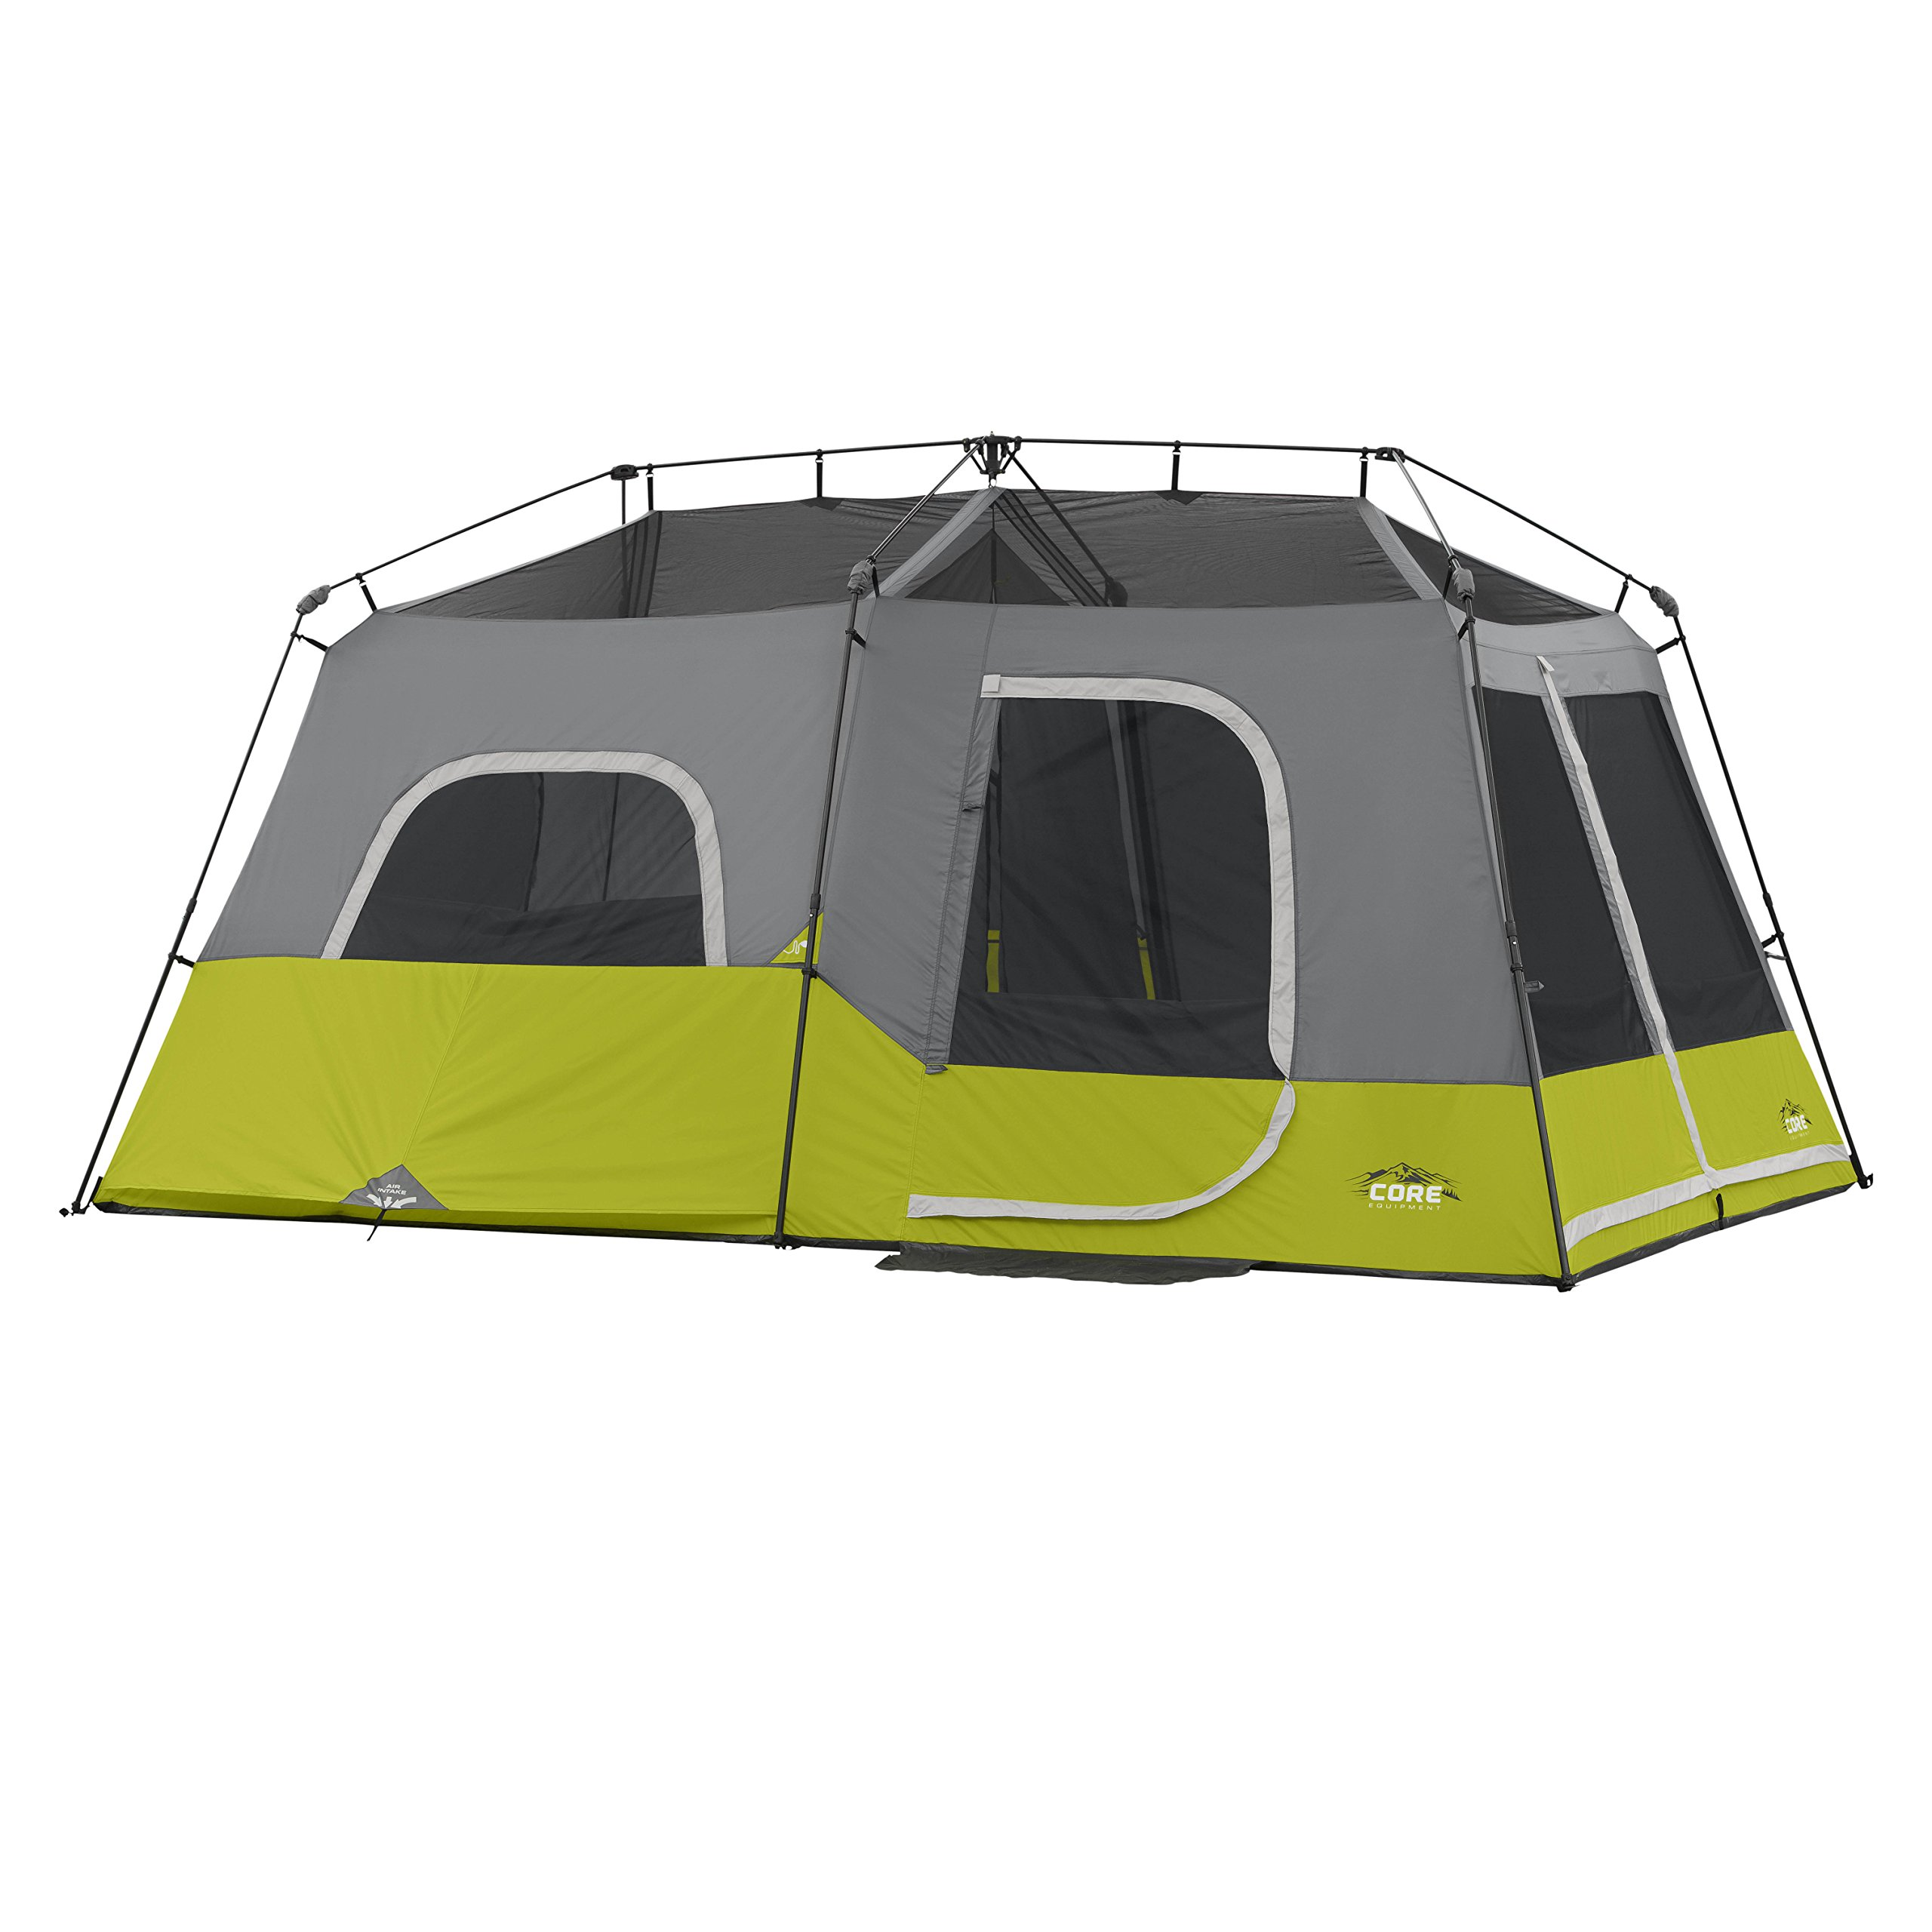 CORE 9 Person Instant Cabin Tent - 14' x 9' by CORE (Image #2)